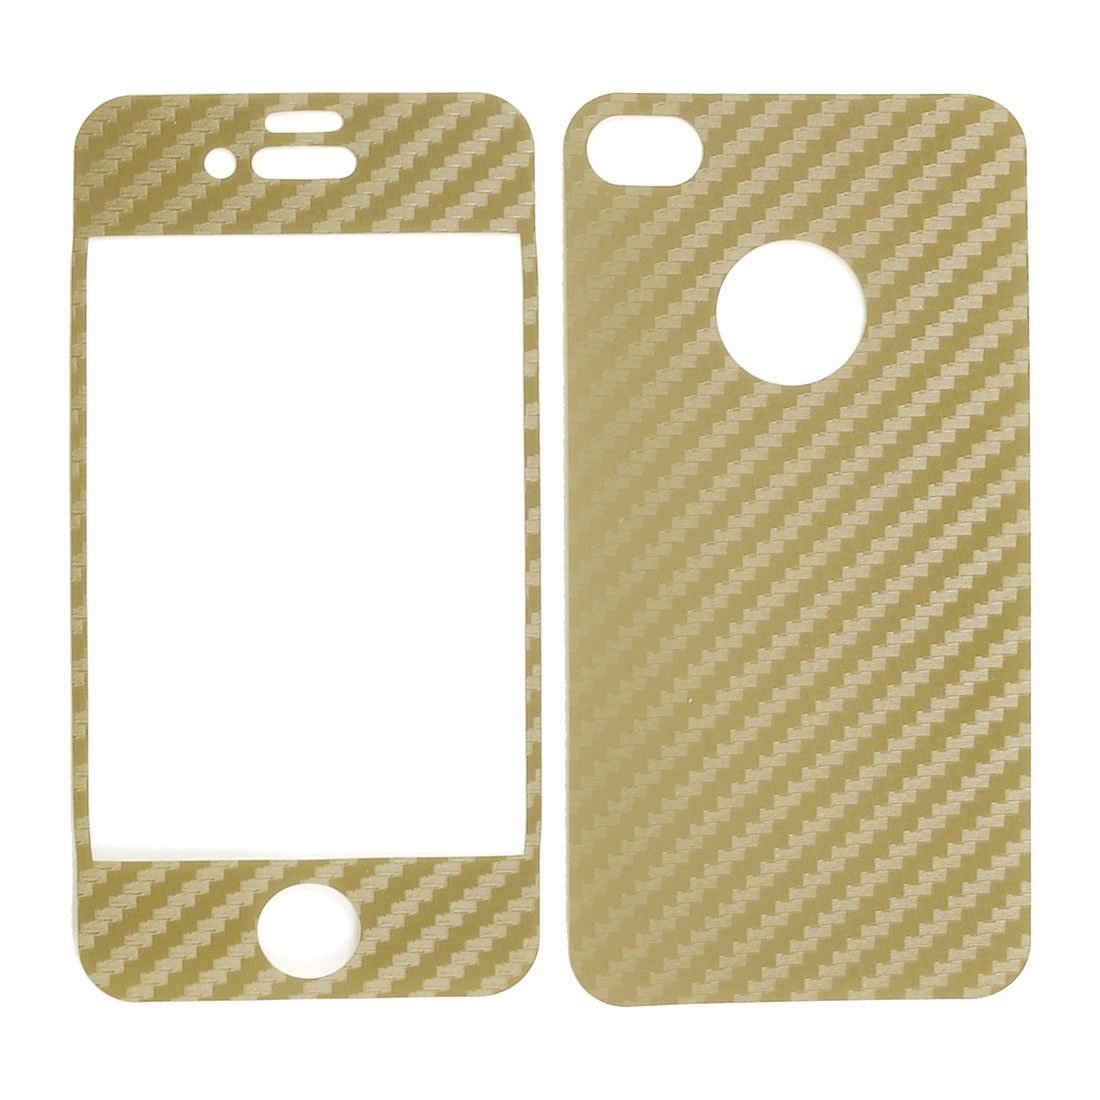 Carbon Fiber Pattern Gold Tone Vinyl Front Back Decal Sticker for iPhone 4 4G 4S